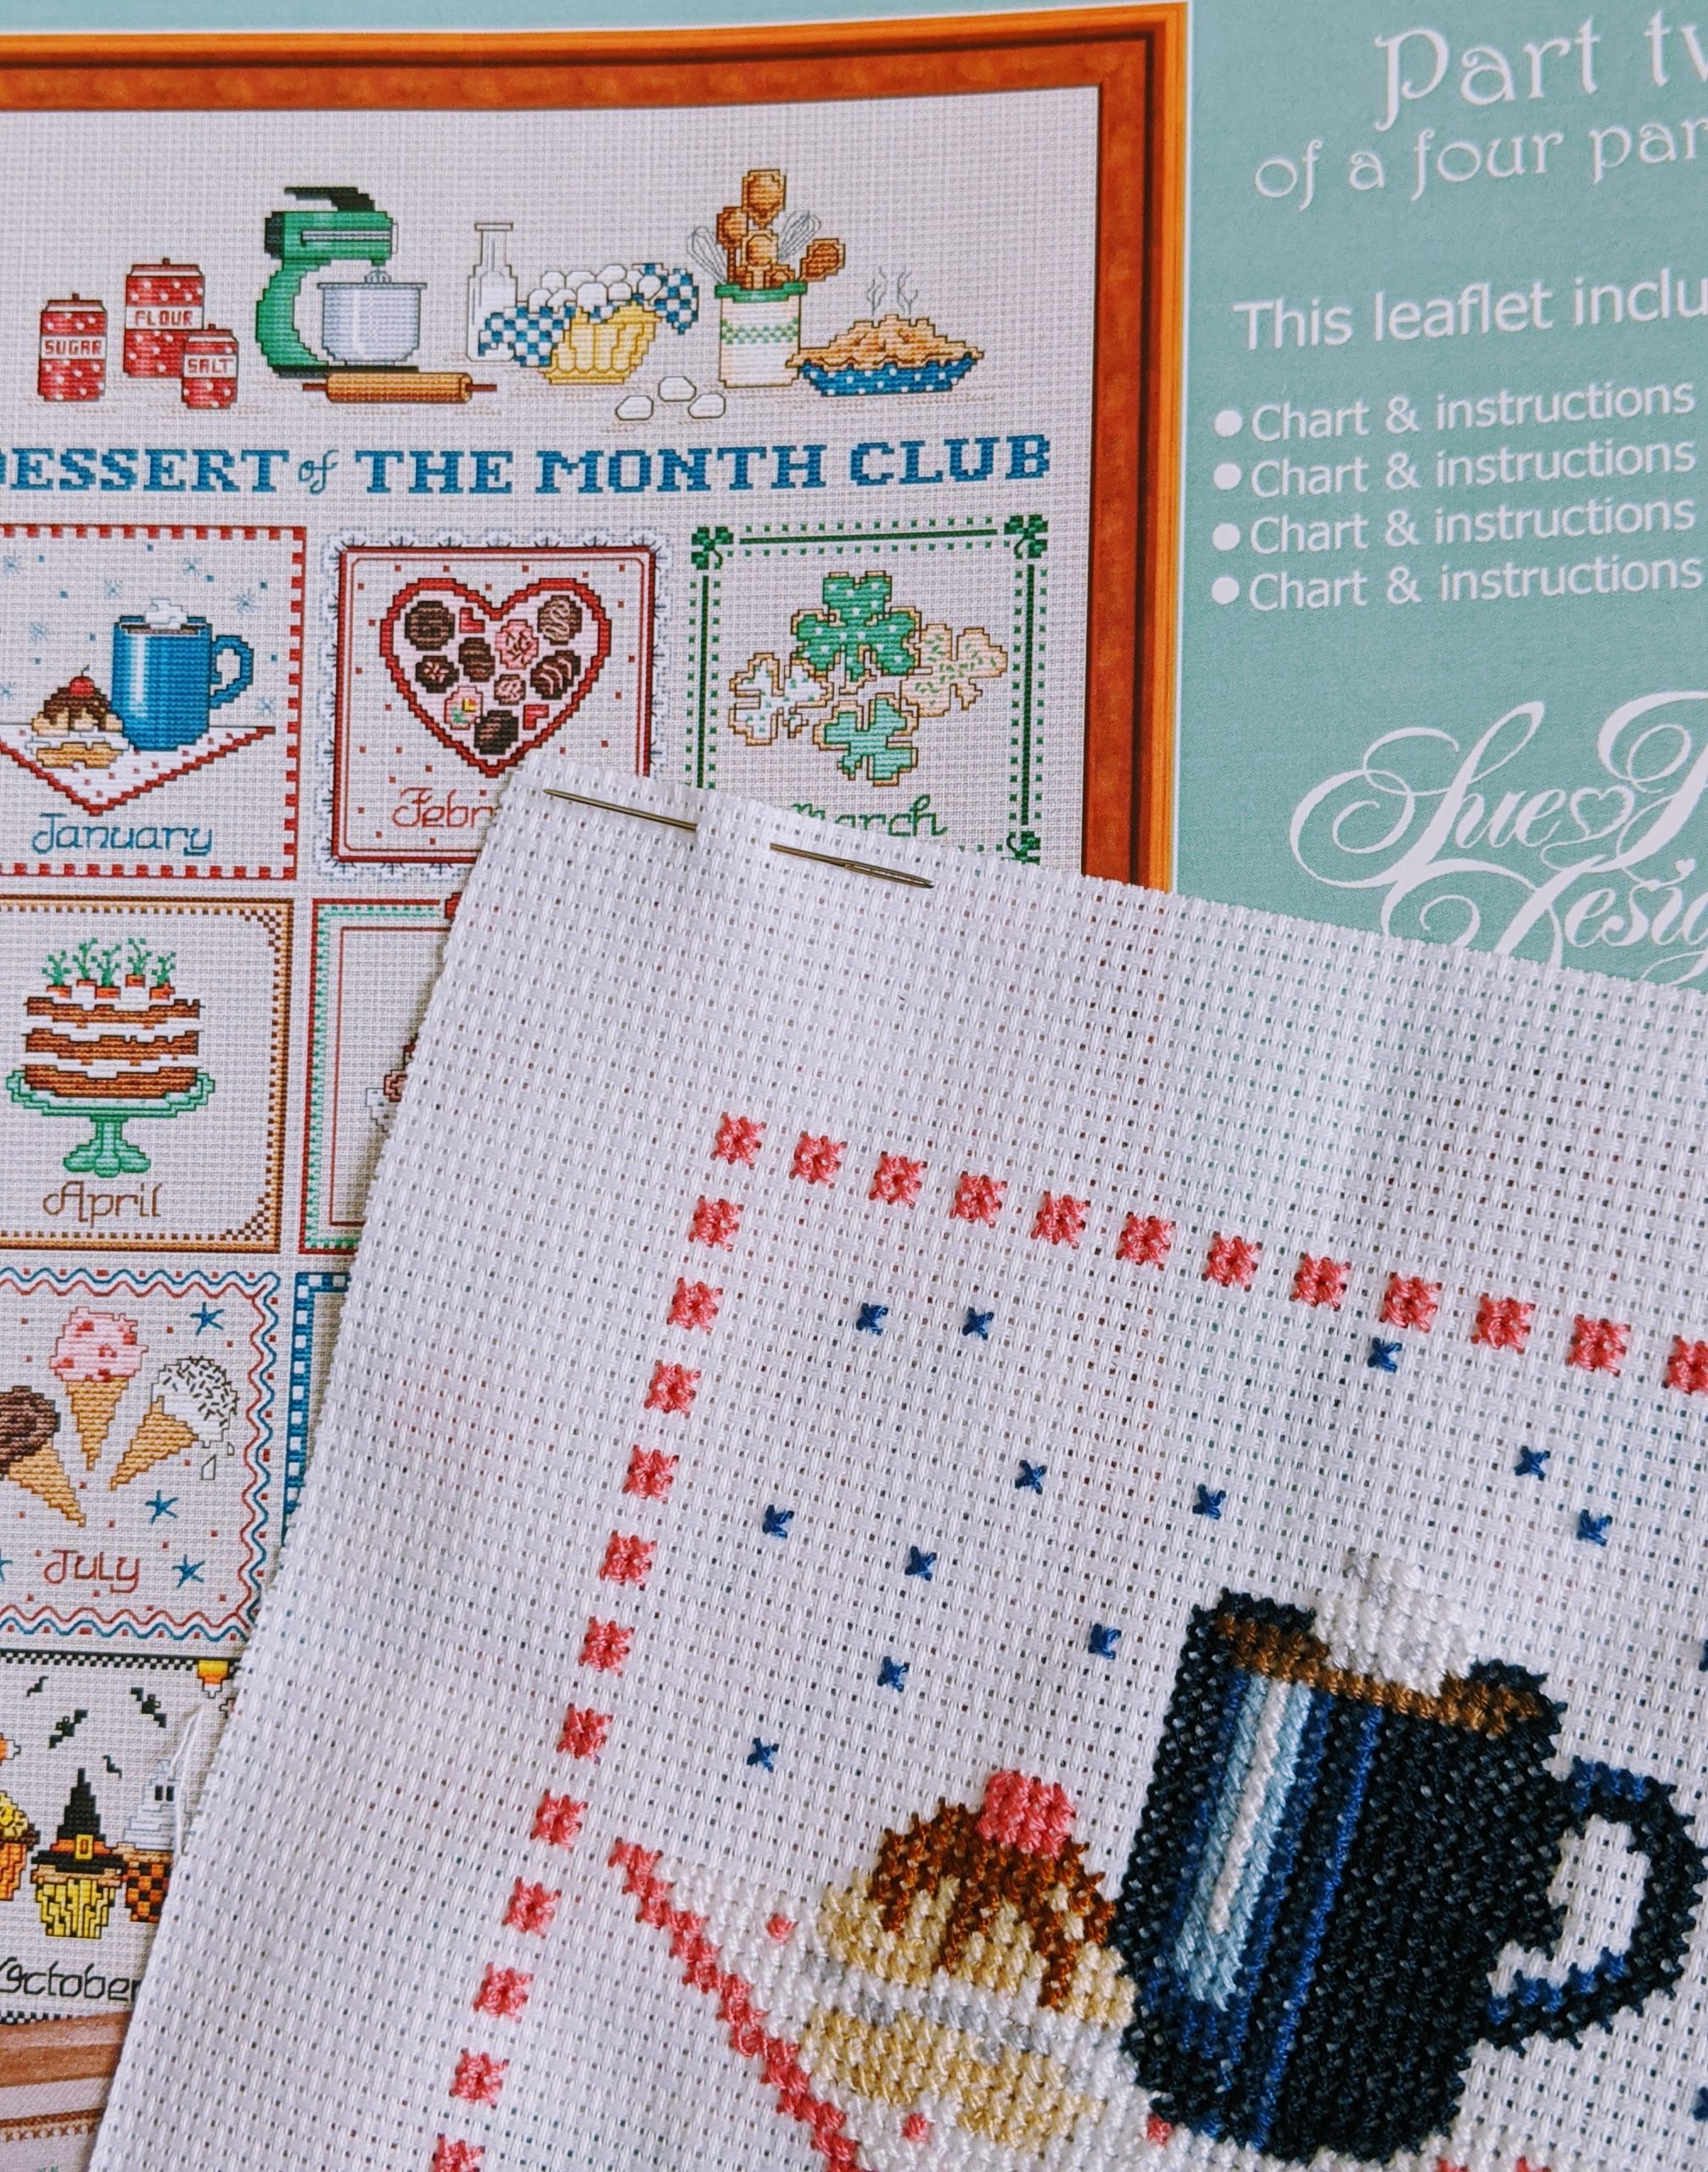 Dessert of the Month Club Cross Stitch